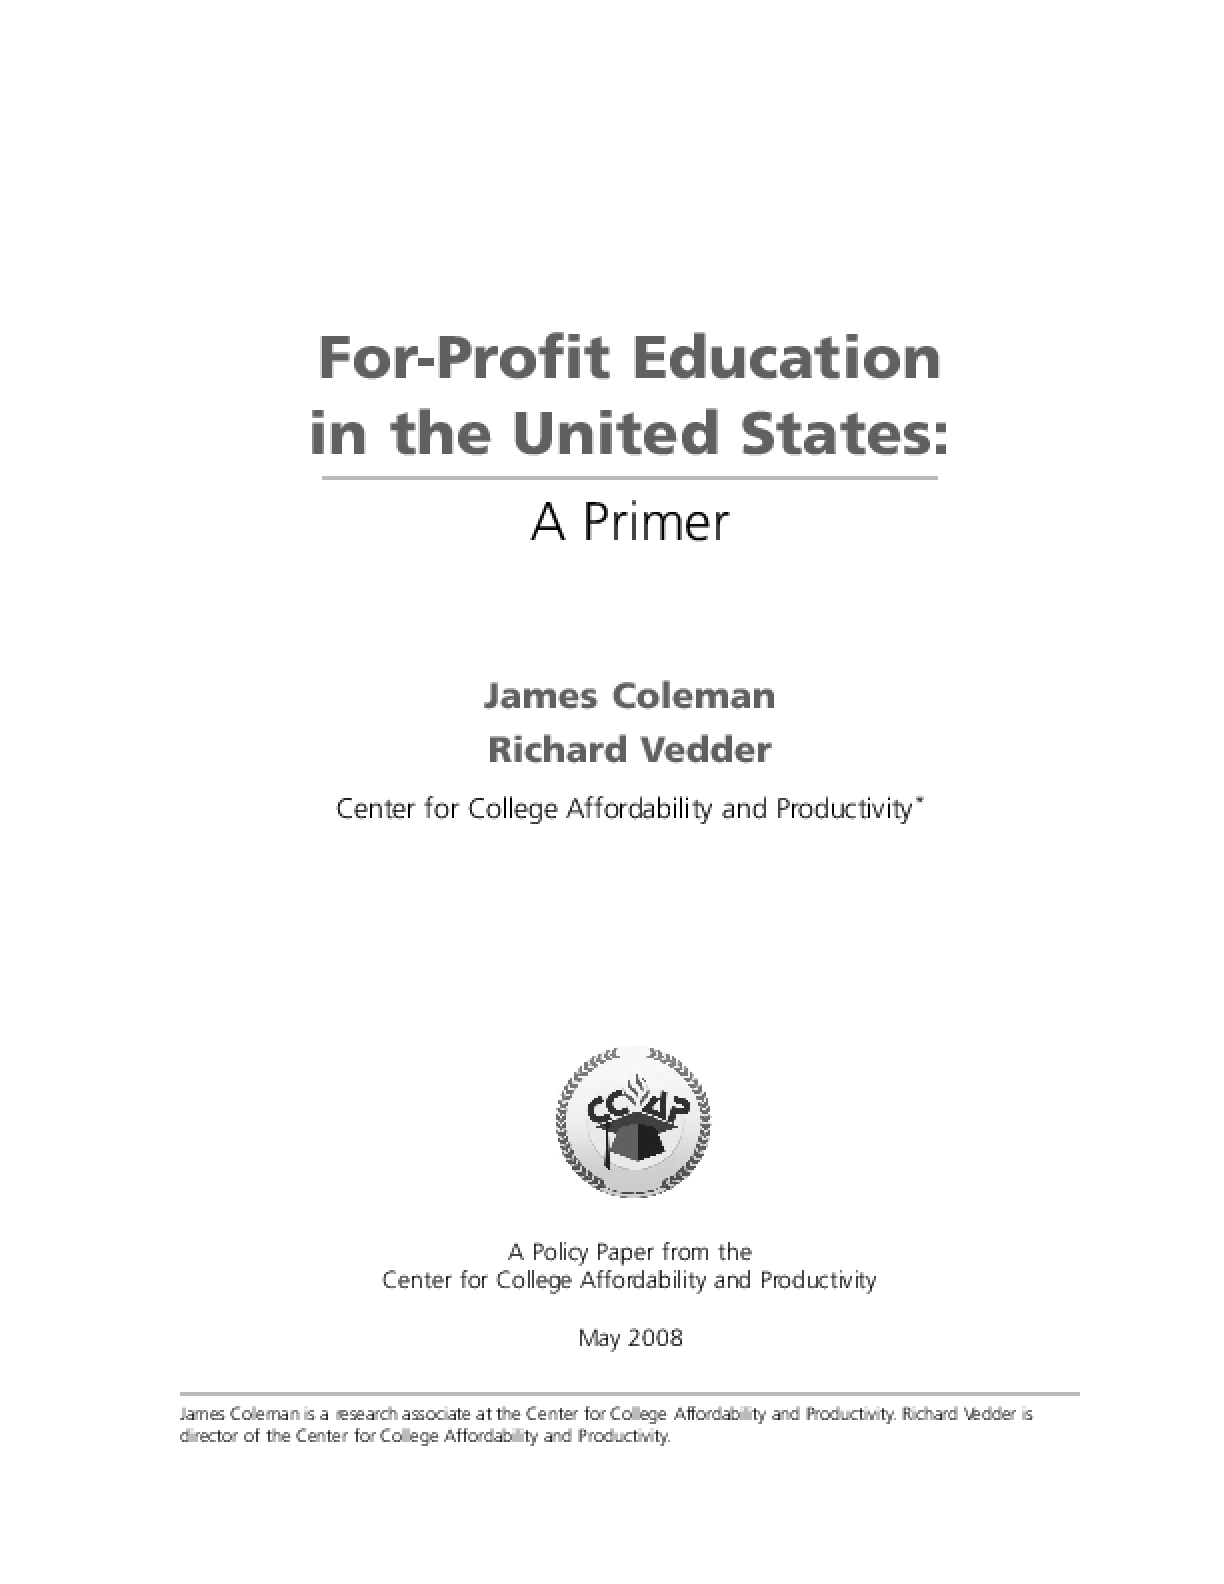 For-Profit Education in the United States: A Primer